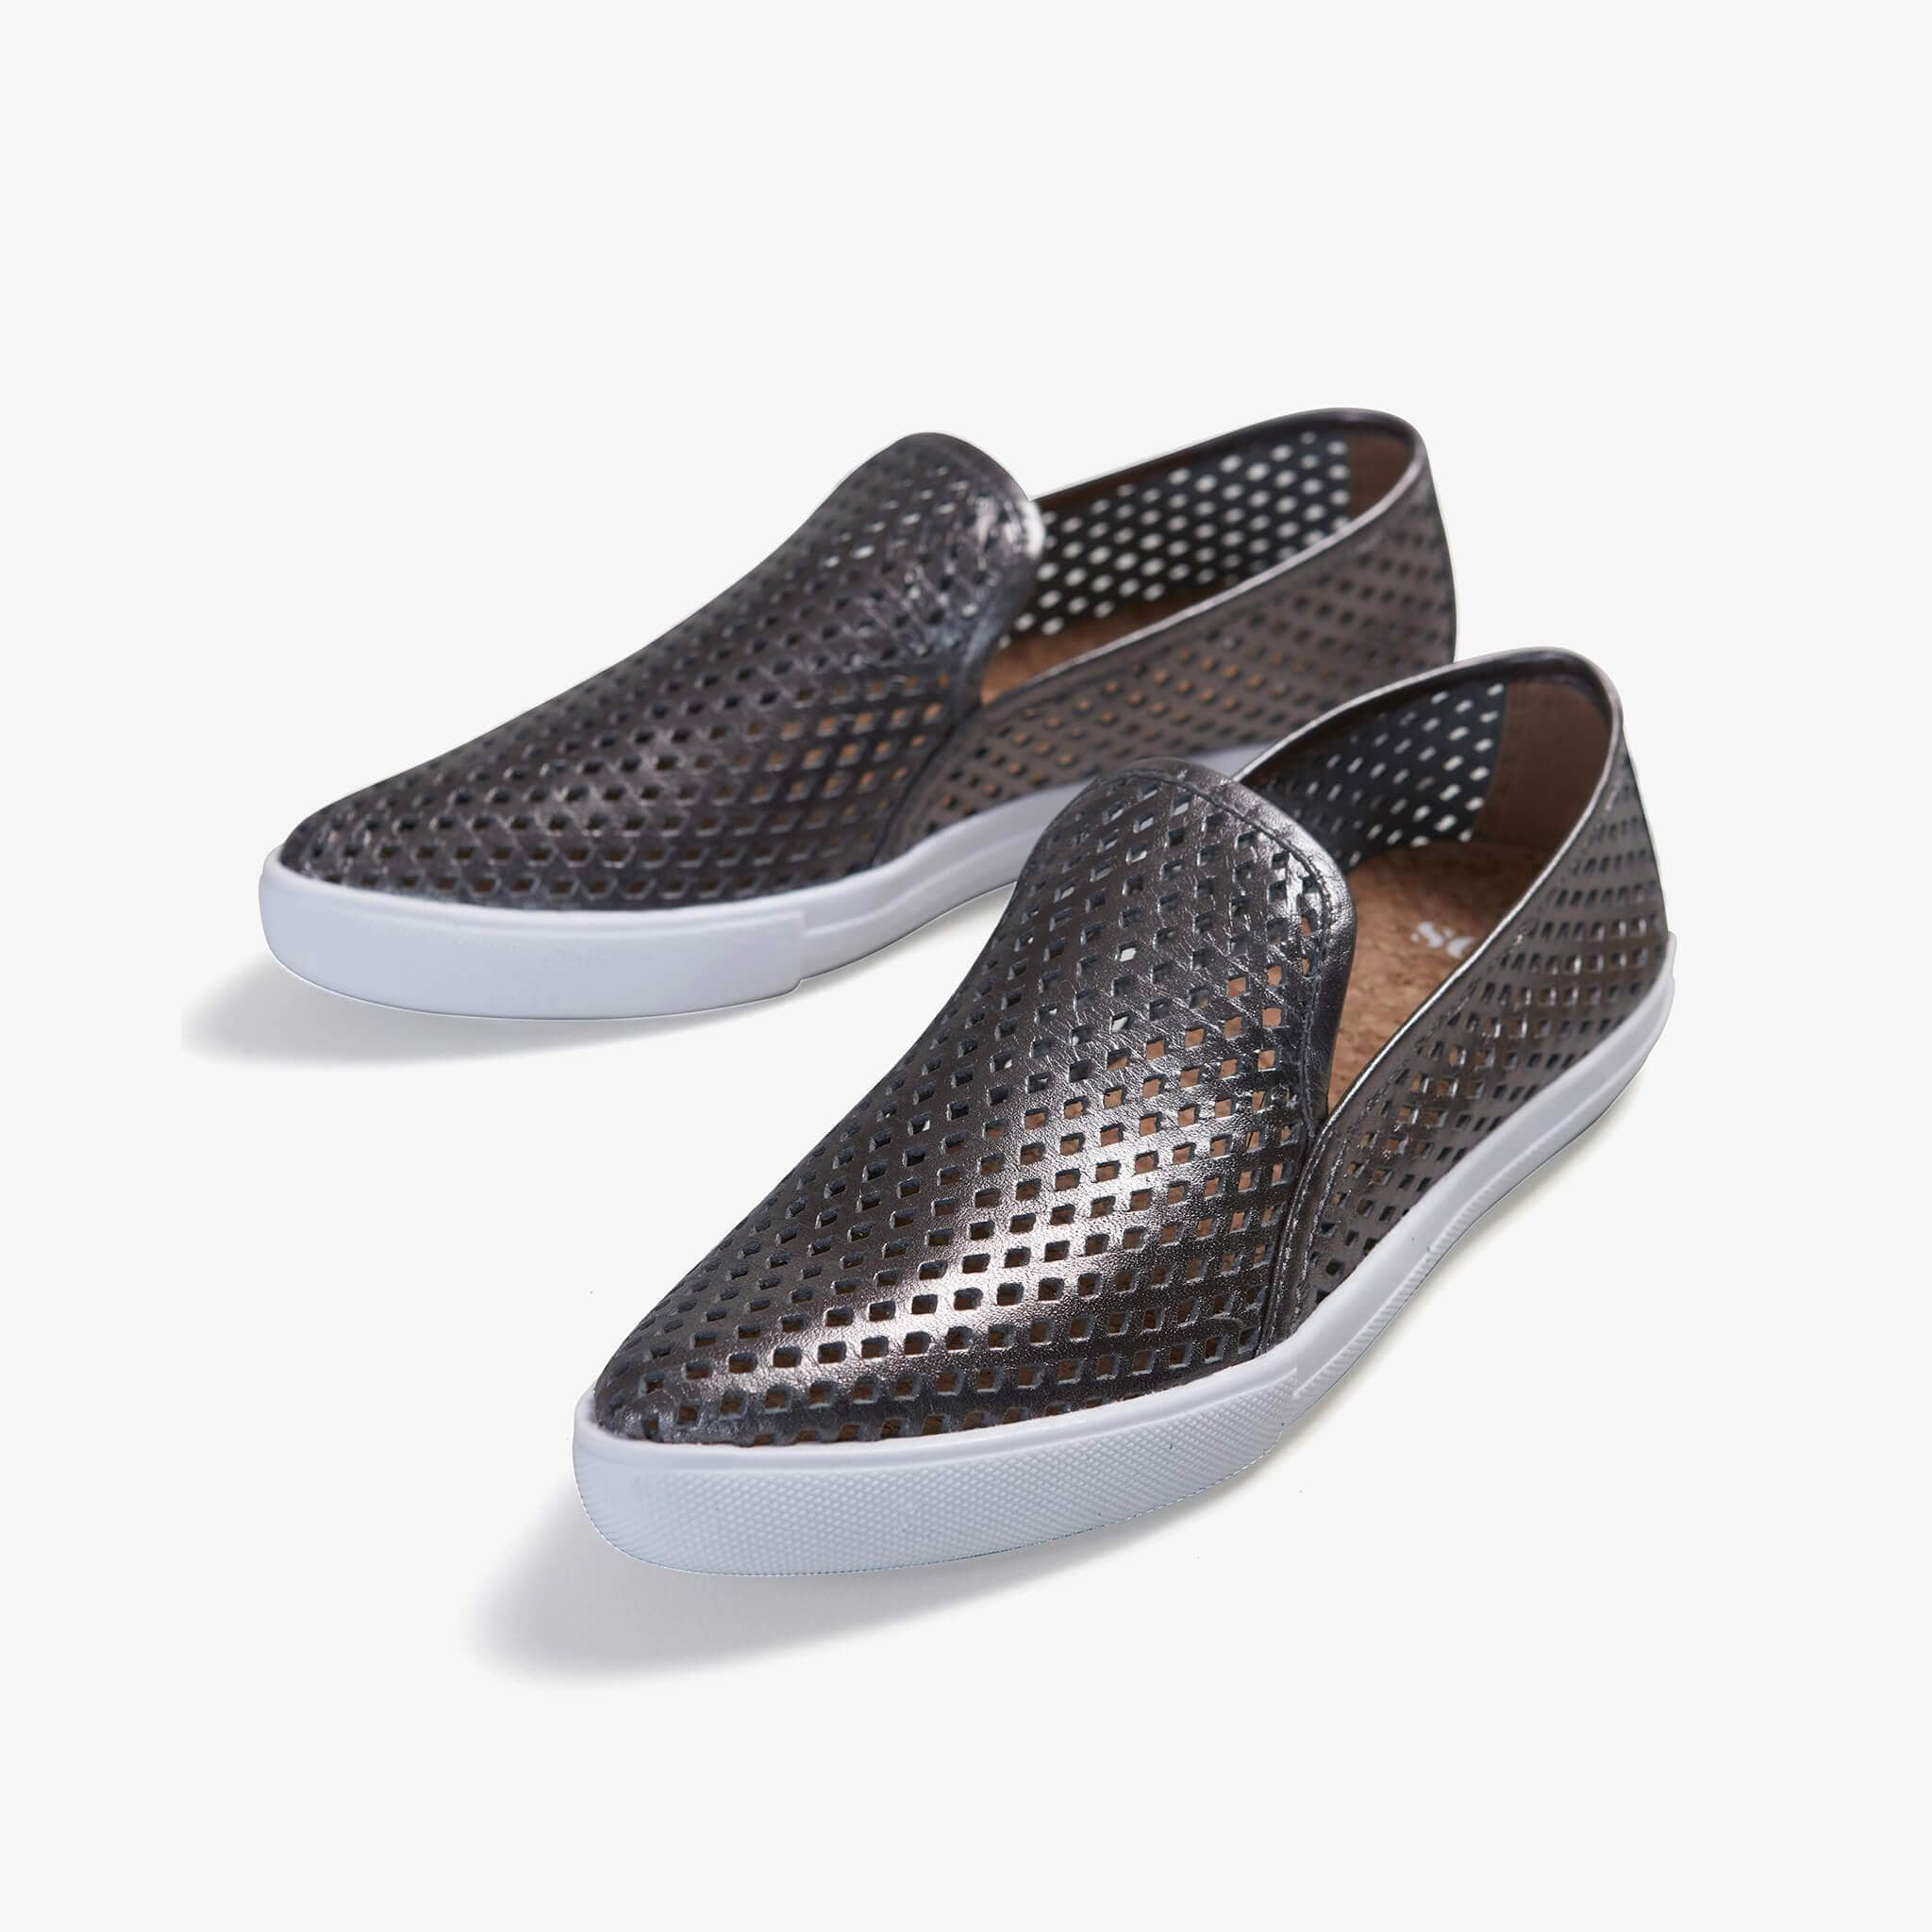 Jibs Slim Space Gray Slip On Sneaker Flat Pair